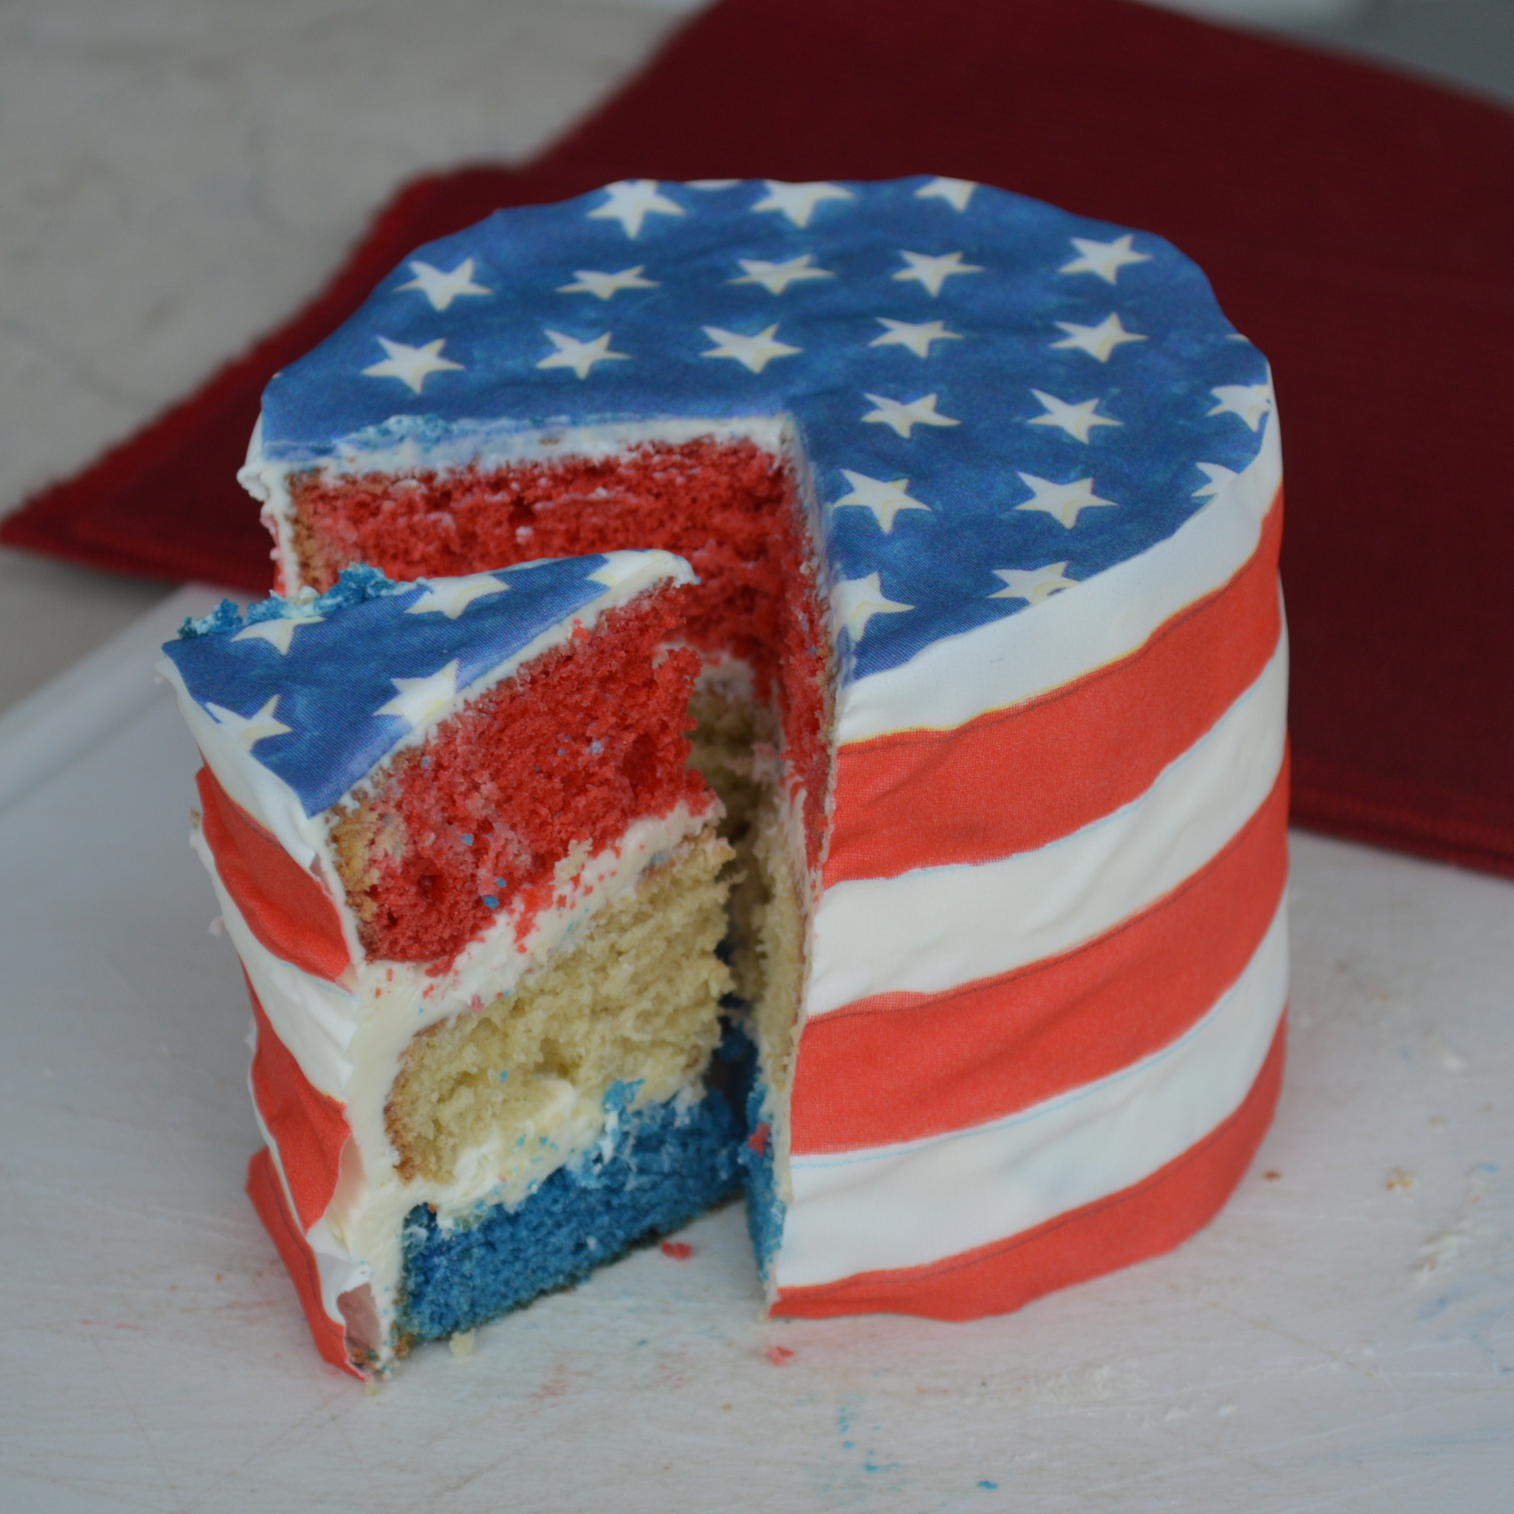 American Flag cake  with  Caprices Chefanie Sheets . When ordering, note that you want your sheet to be an American flag.